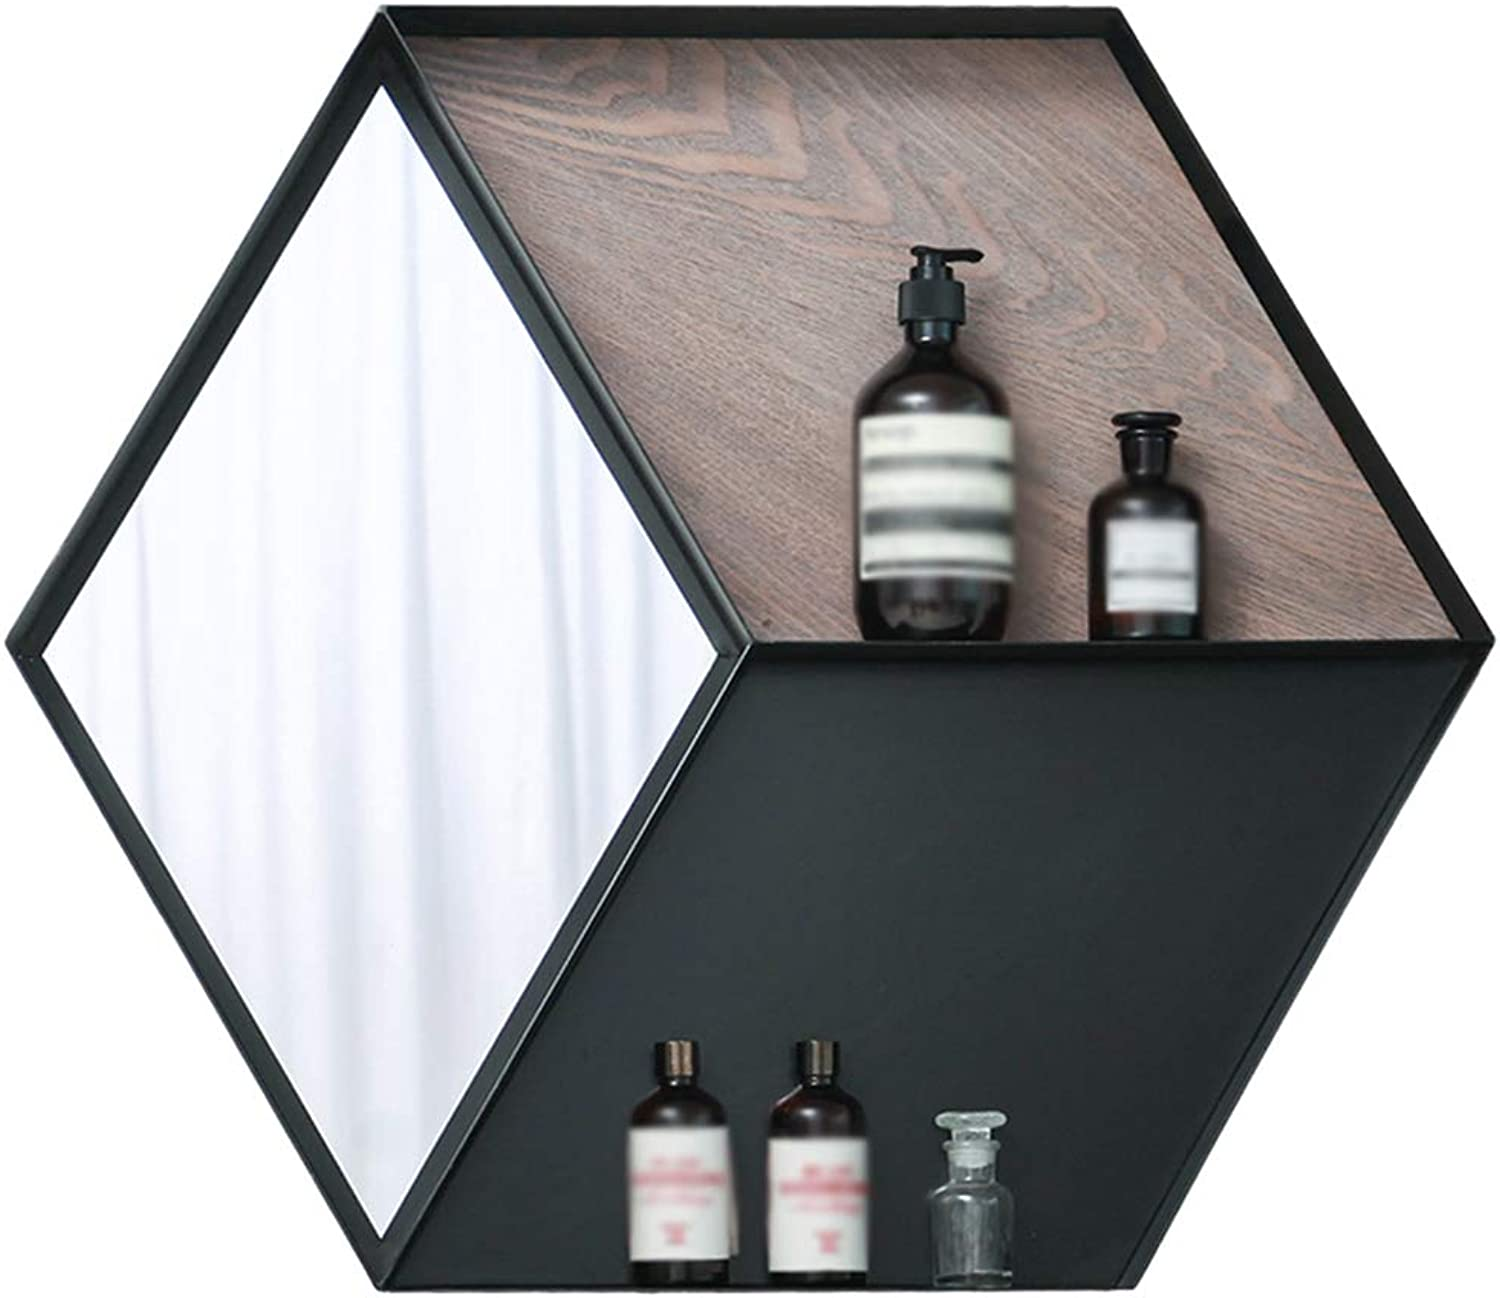 YANZHEN Mirror Wall-Mounted with Shelf Ultra-Clear Storage Multifunction Geometric Hexagon Bathroom Simple and Modern Iron Art, 2 Layer (color   Black, Size   69x8x60cm)